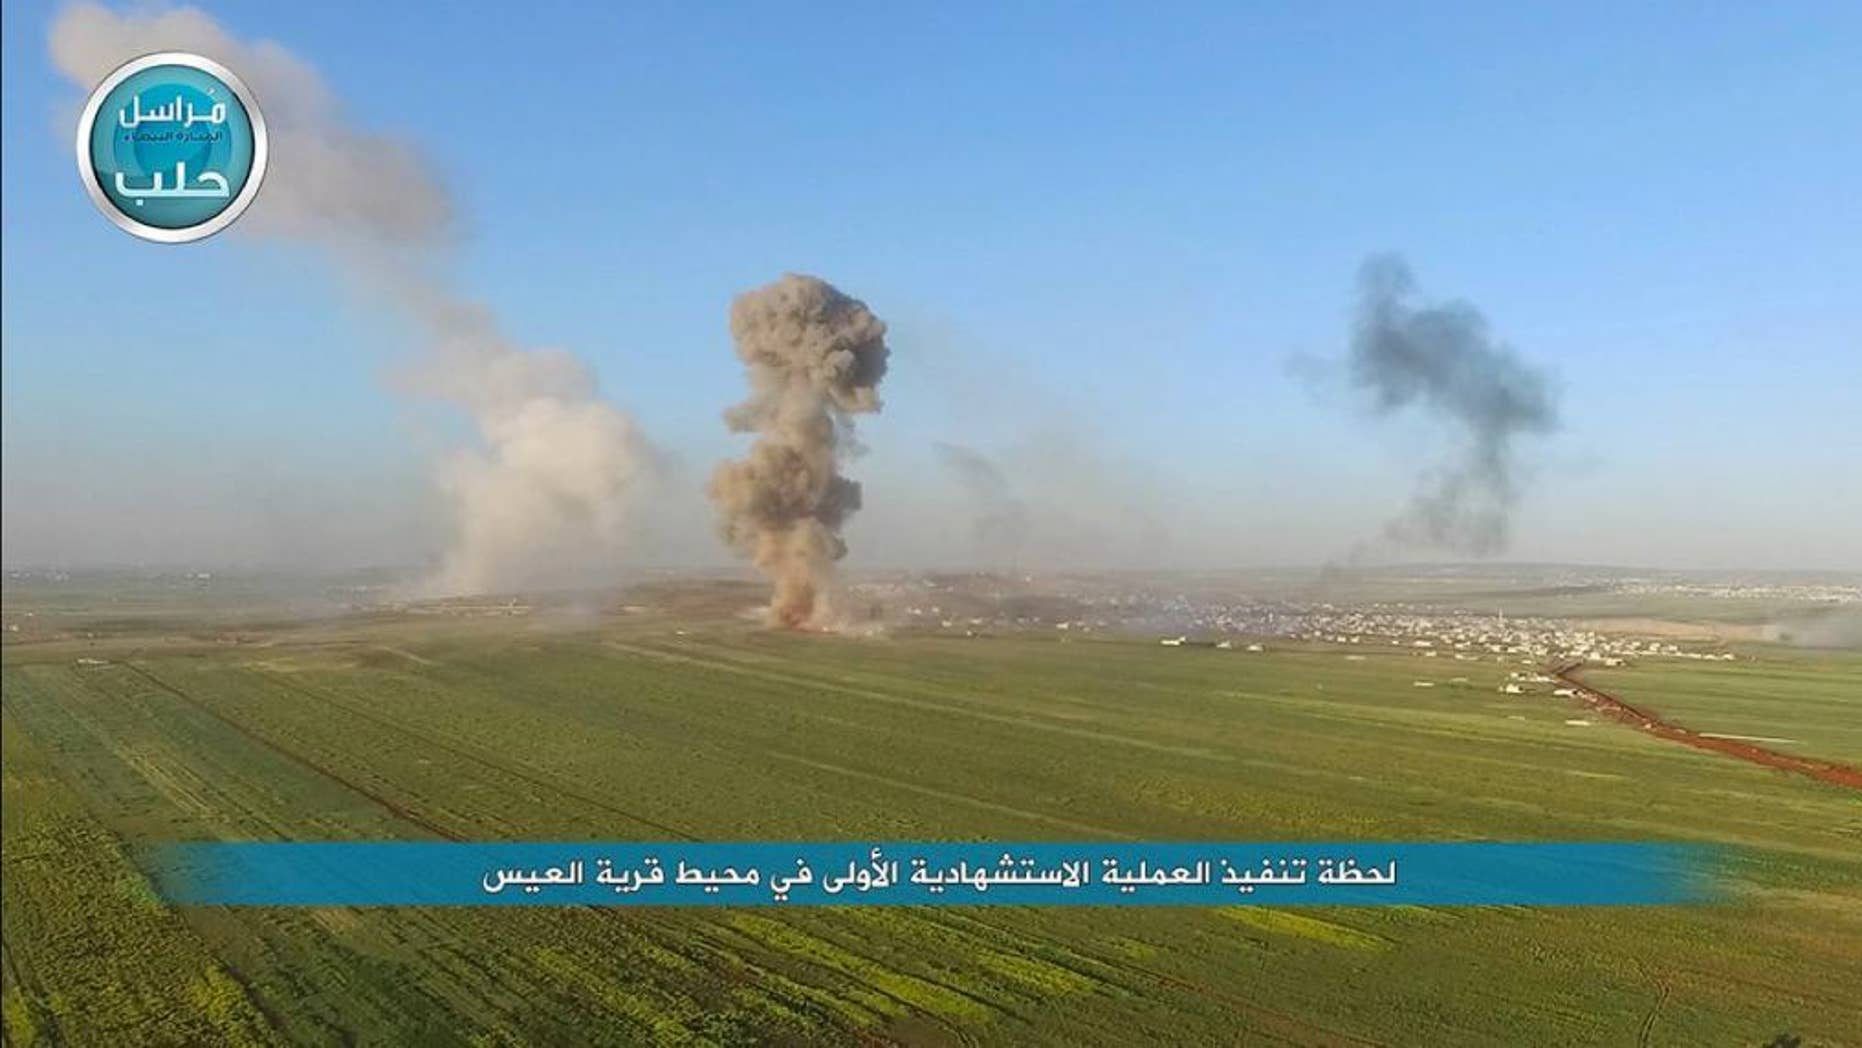 """In this image posted on the Twitter page of Syria's al-Qaida-linked Nusra Front on Friday, April 1, 2016, shows smoke billowing as Nusra Front fighters attack the northern village of al-Ais in Aleppo province, Syria. The Britain-based Syrian Observatory for Human Rights says 12 Hezbollah fighters were killed and dozens were wounded in Saturday's attack by militants led by al-Qaida's Syria branch — known as the Nusra Front — on the northern village of al-Ais.  The title in Arabic that reads """"the moment the first martyrdom operation occurred near the village of al-Ais."""" (Al-Nusra Front via AP)"""